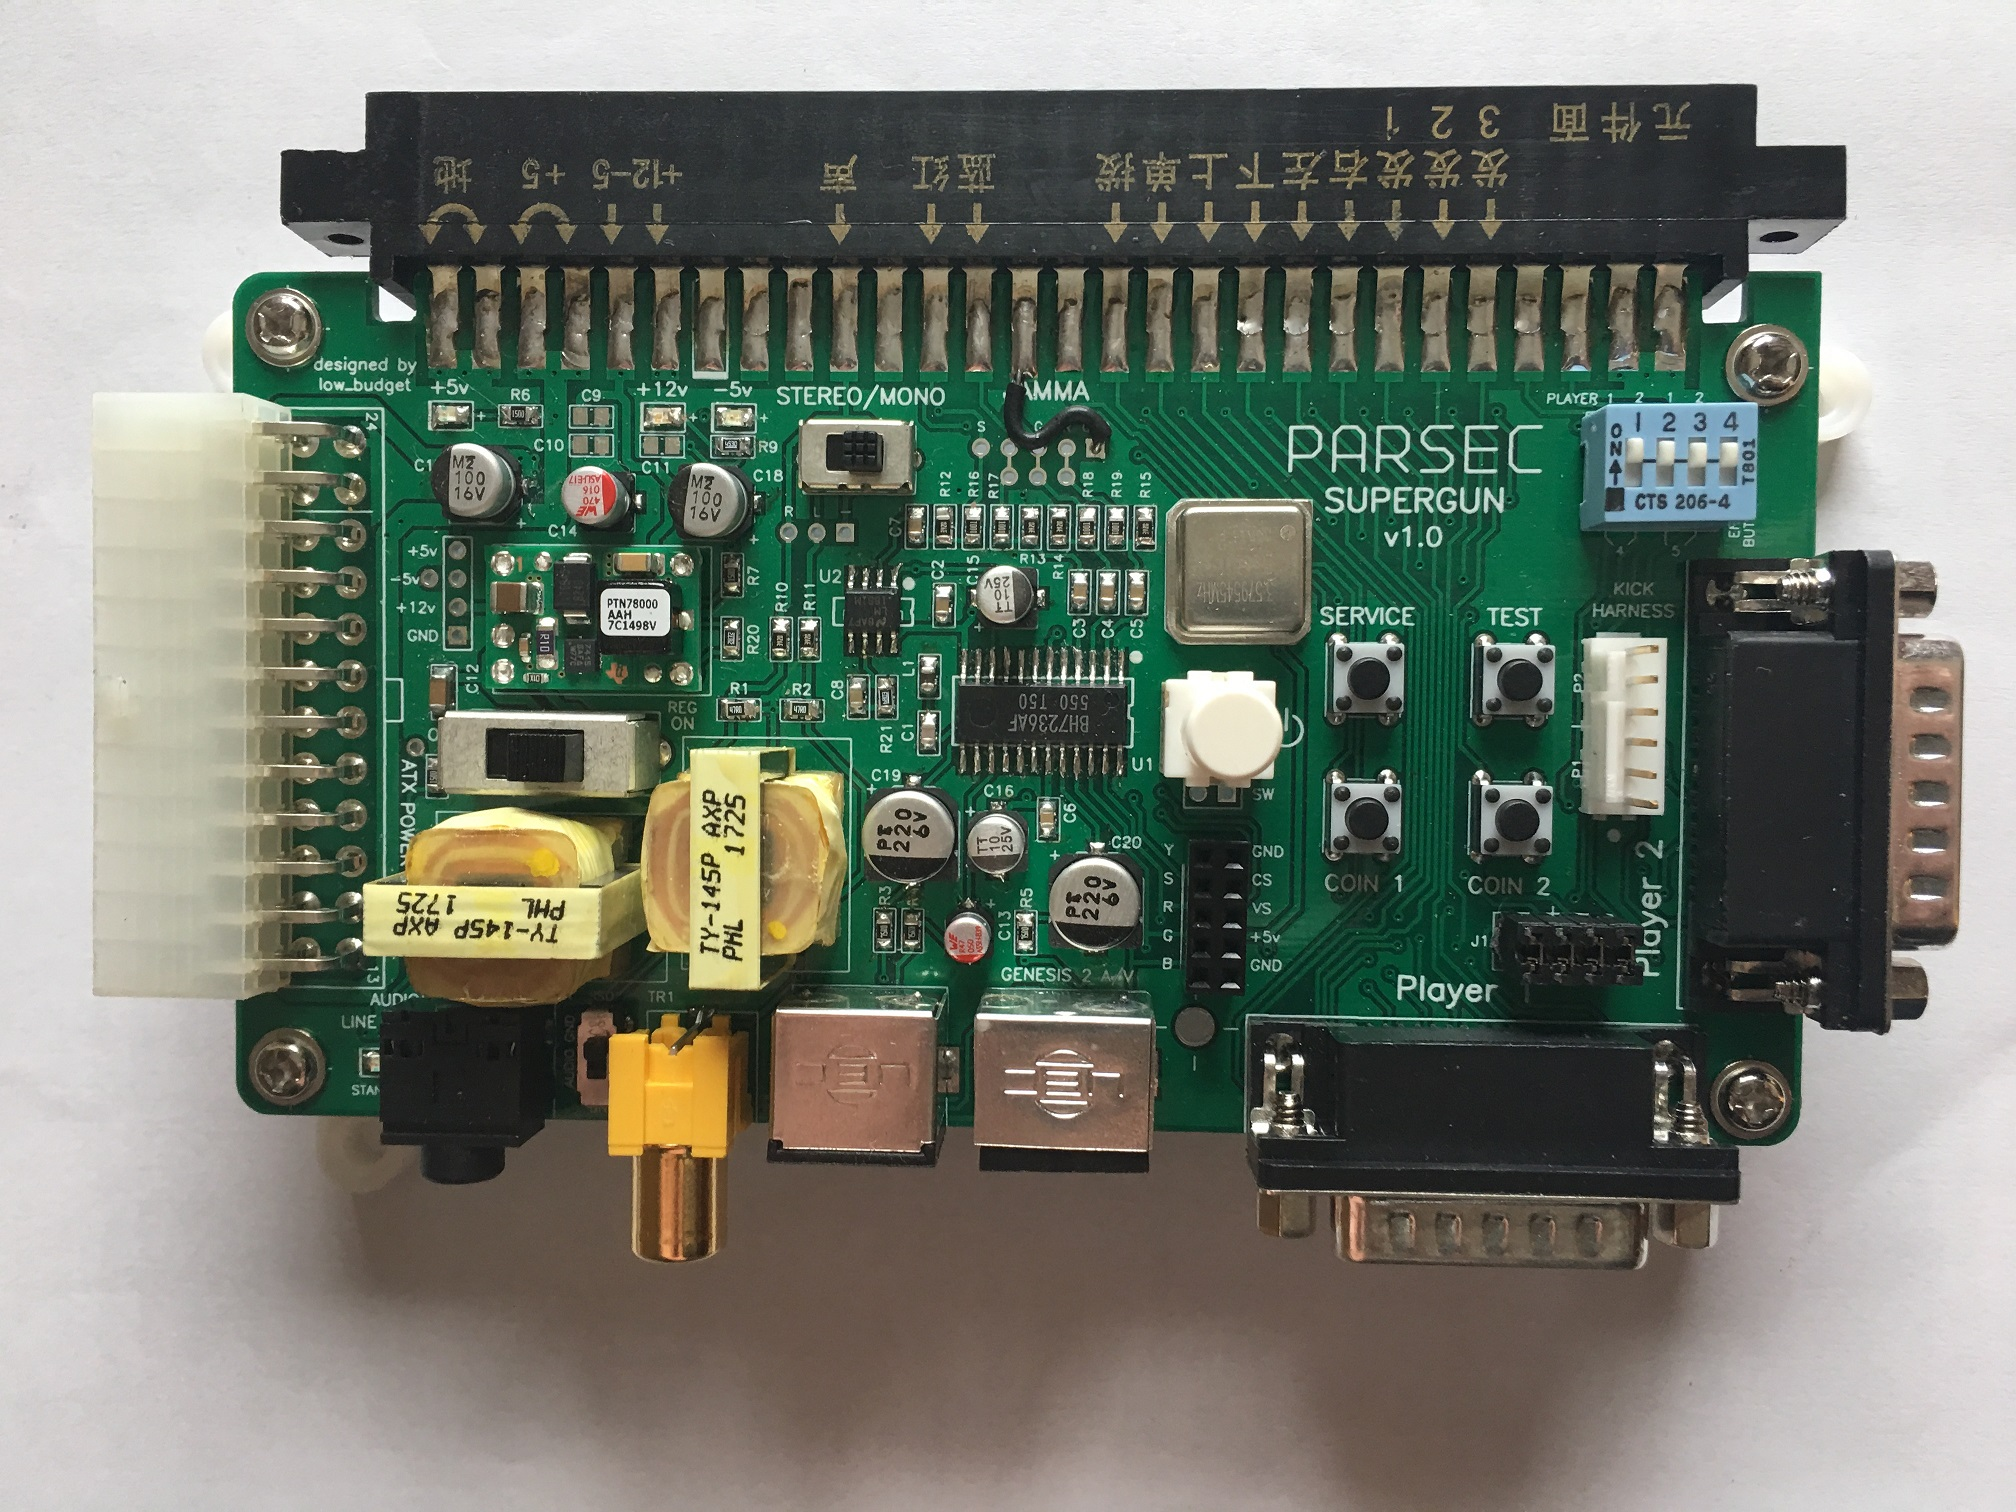 PARSEC Supergun - Arcade and Pinball - AtariAge Forums